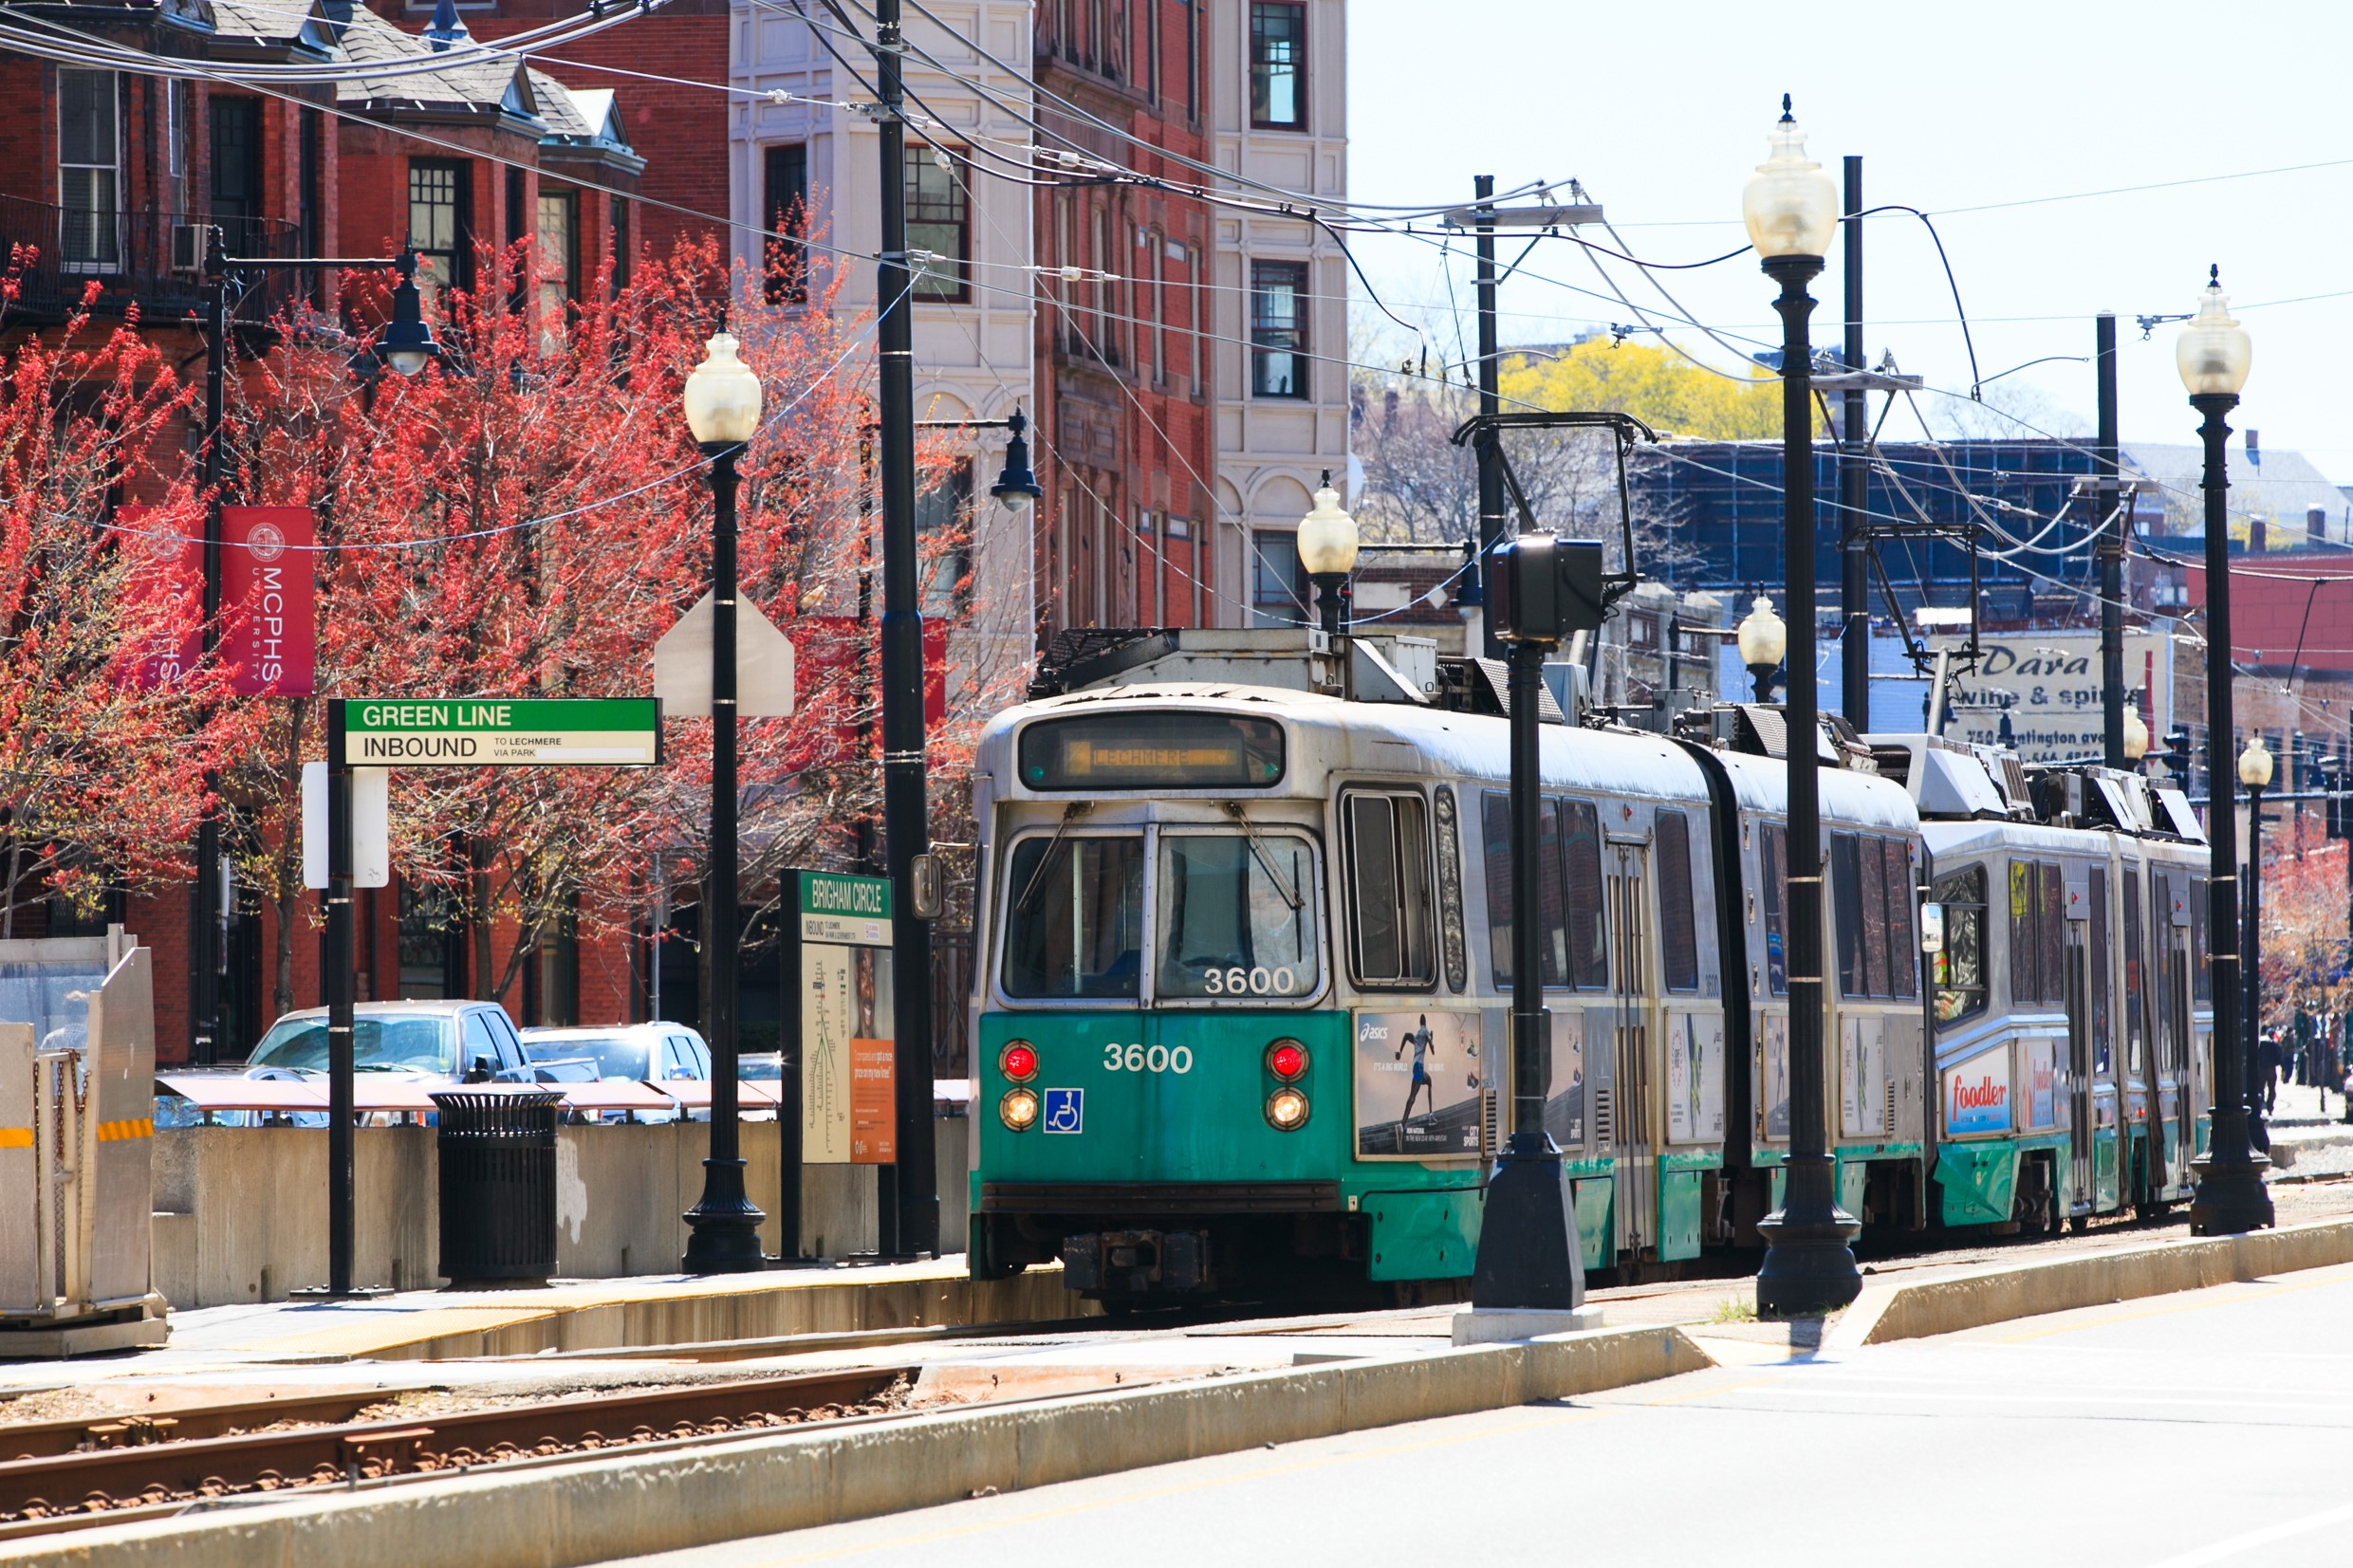 Boston traffic and public transportation system on the Green Line.